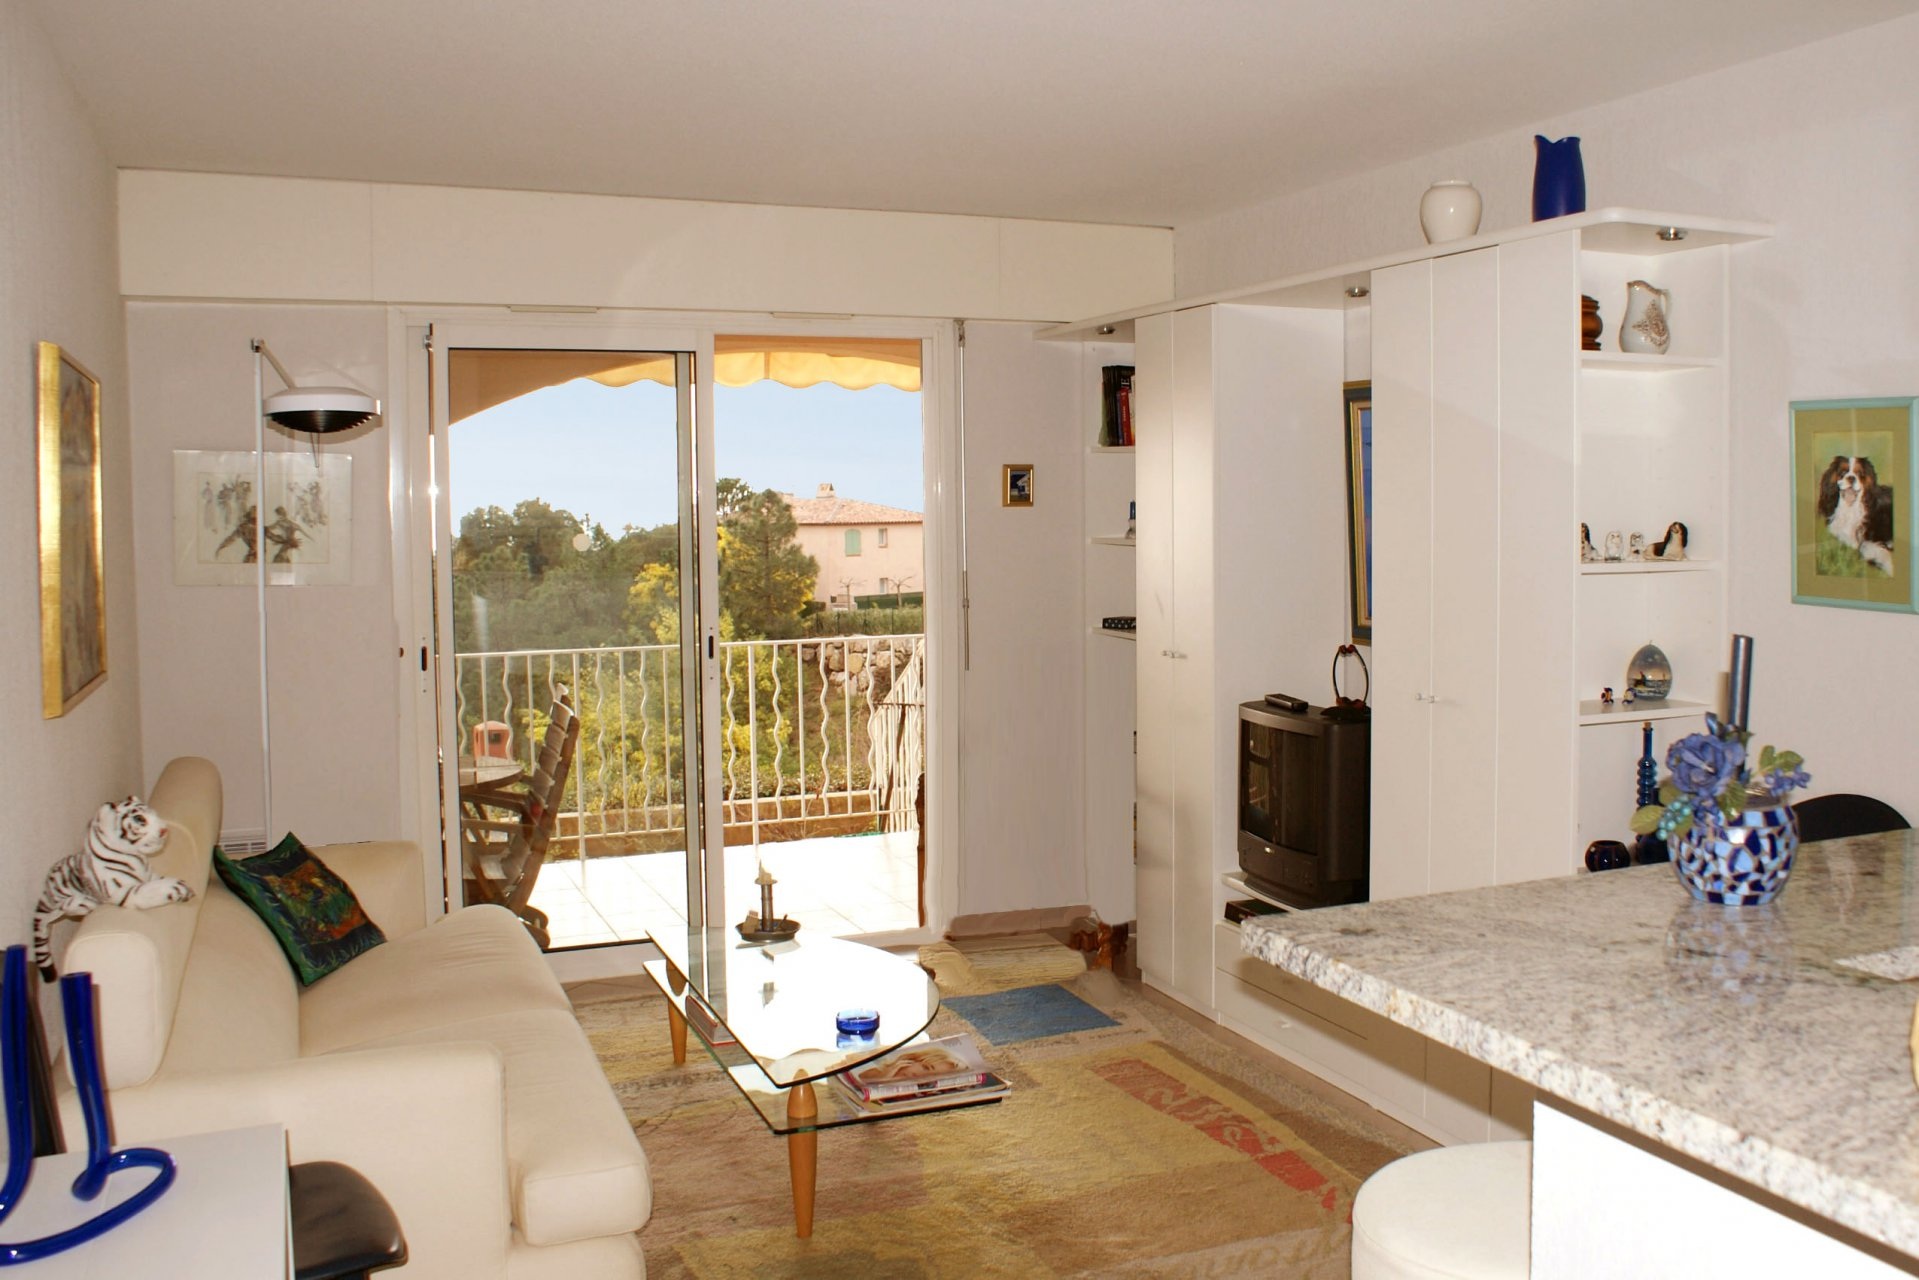 Living room bed room 4 sleeps open plan kitchen with washing machine and dish washer large terrasse fine sea view ro 32